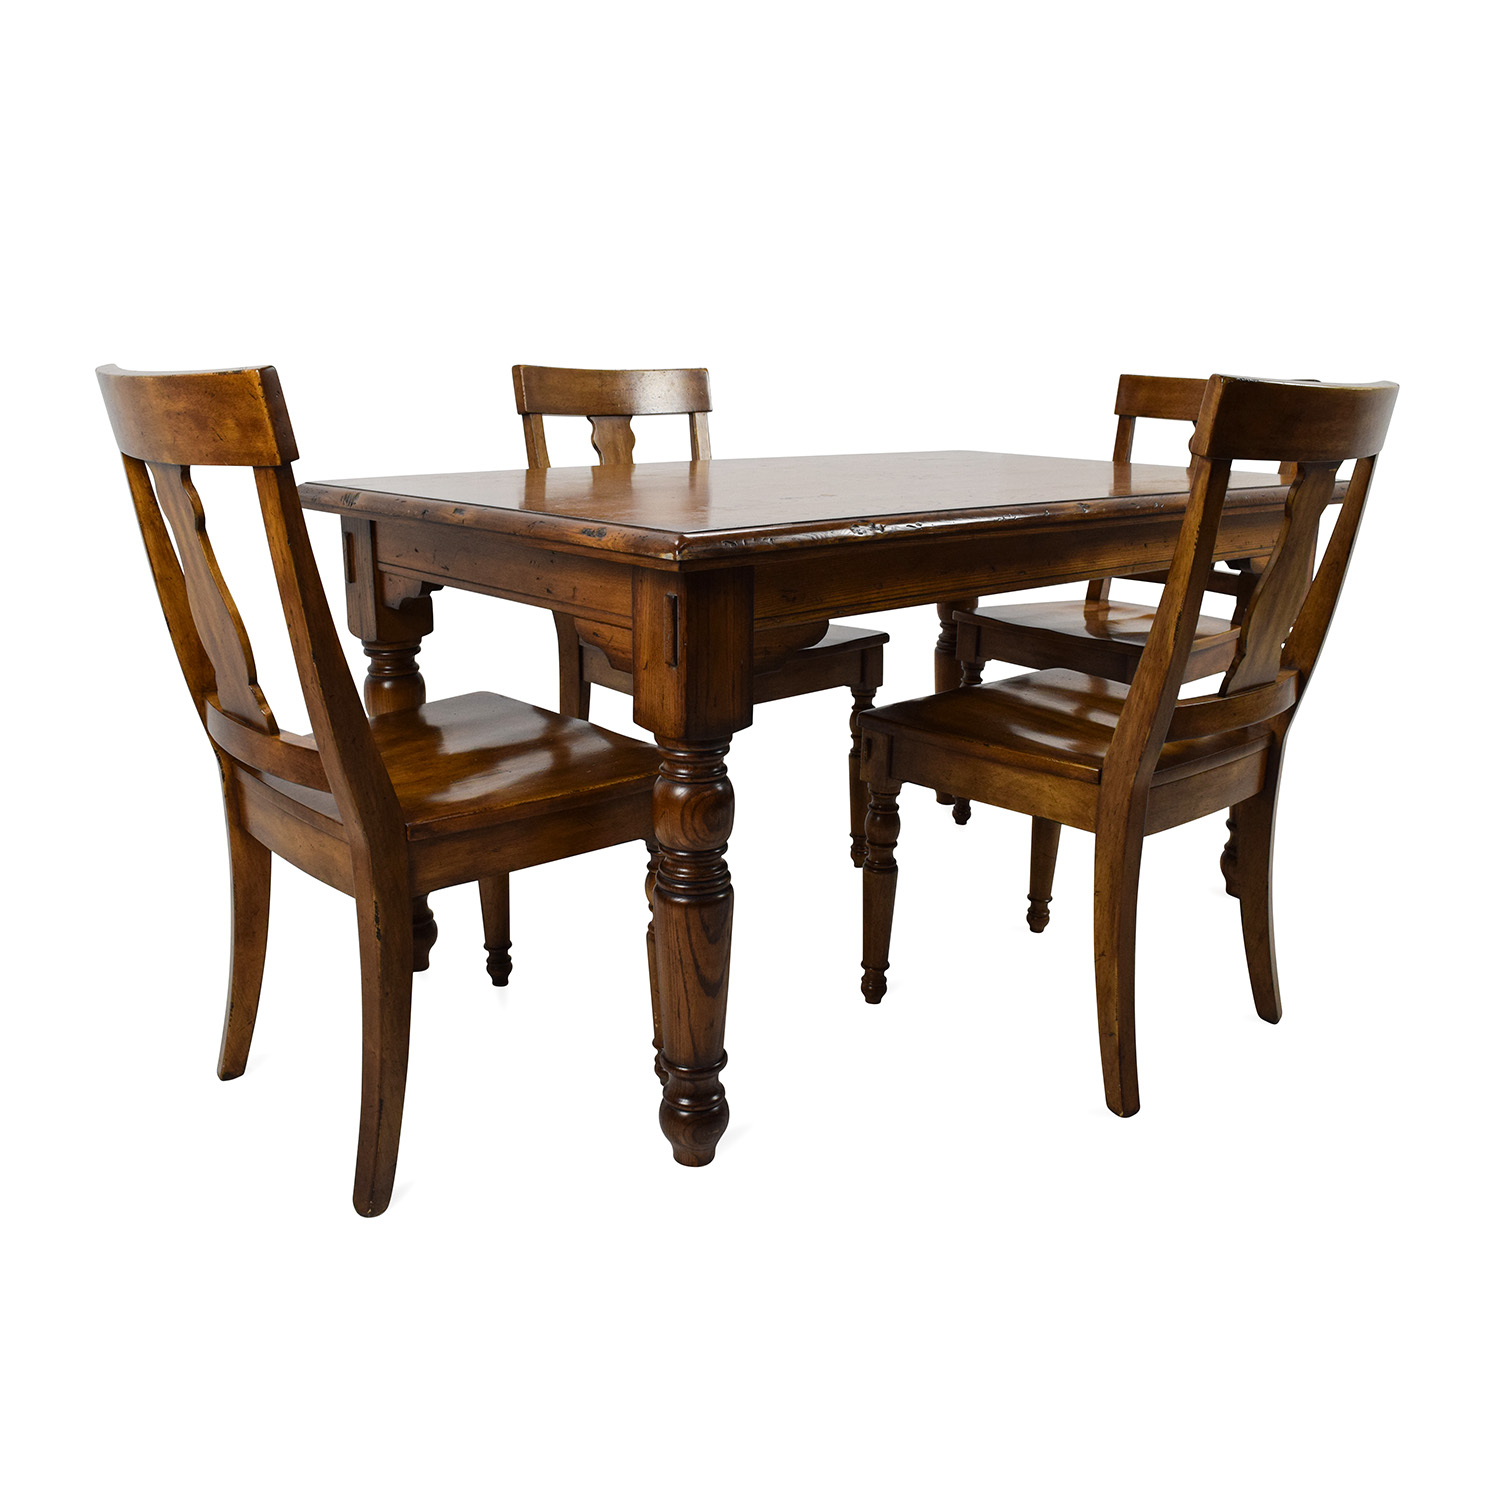 Pottery Barn Pottery Barn Solid Wood Dining Set for sale